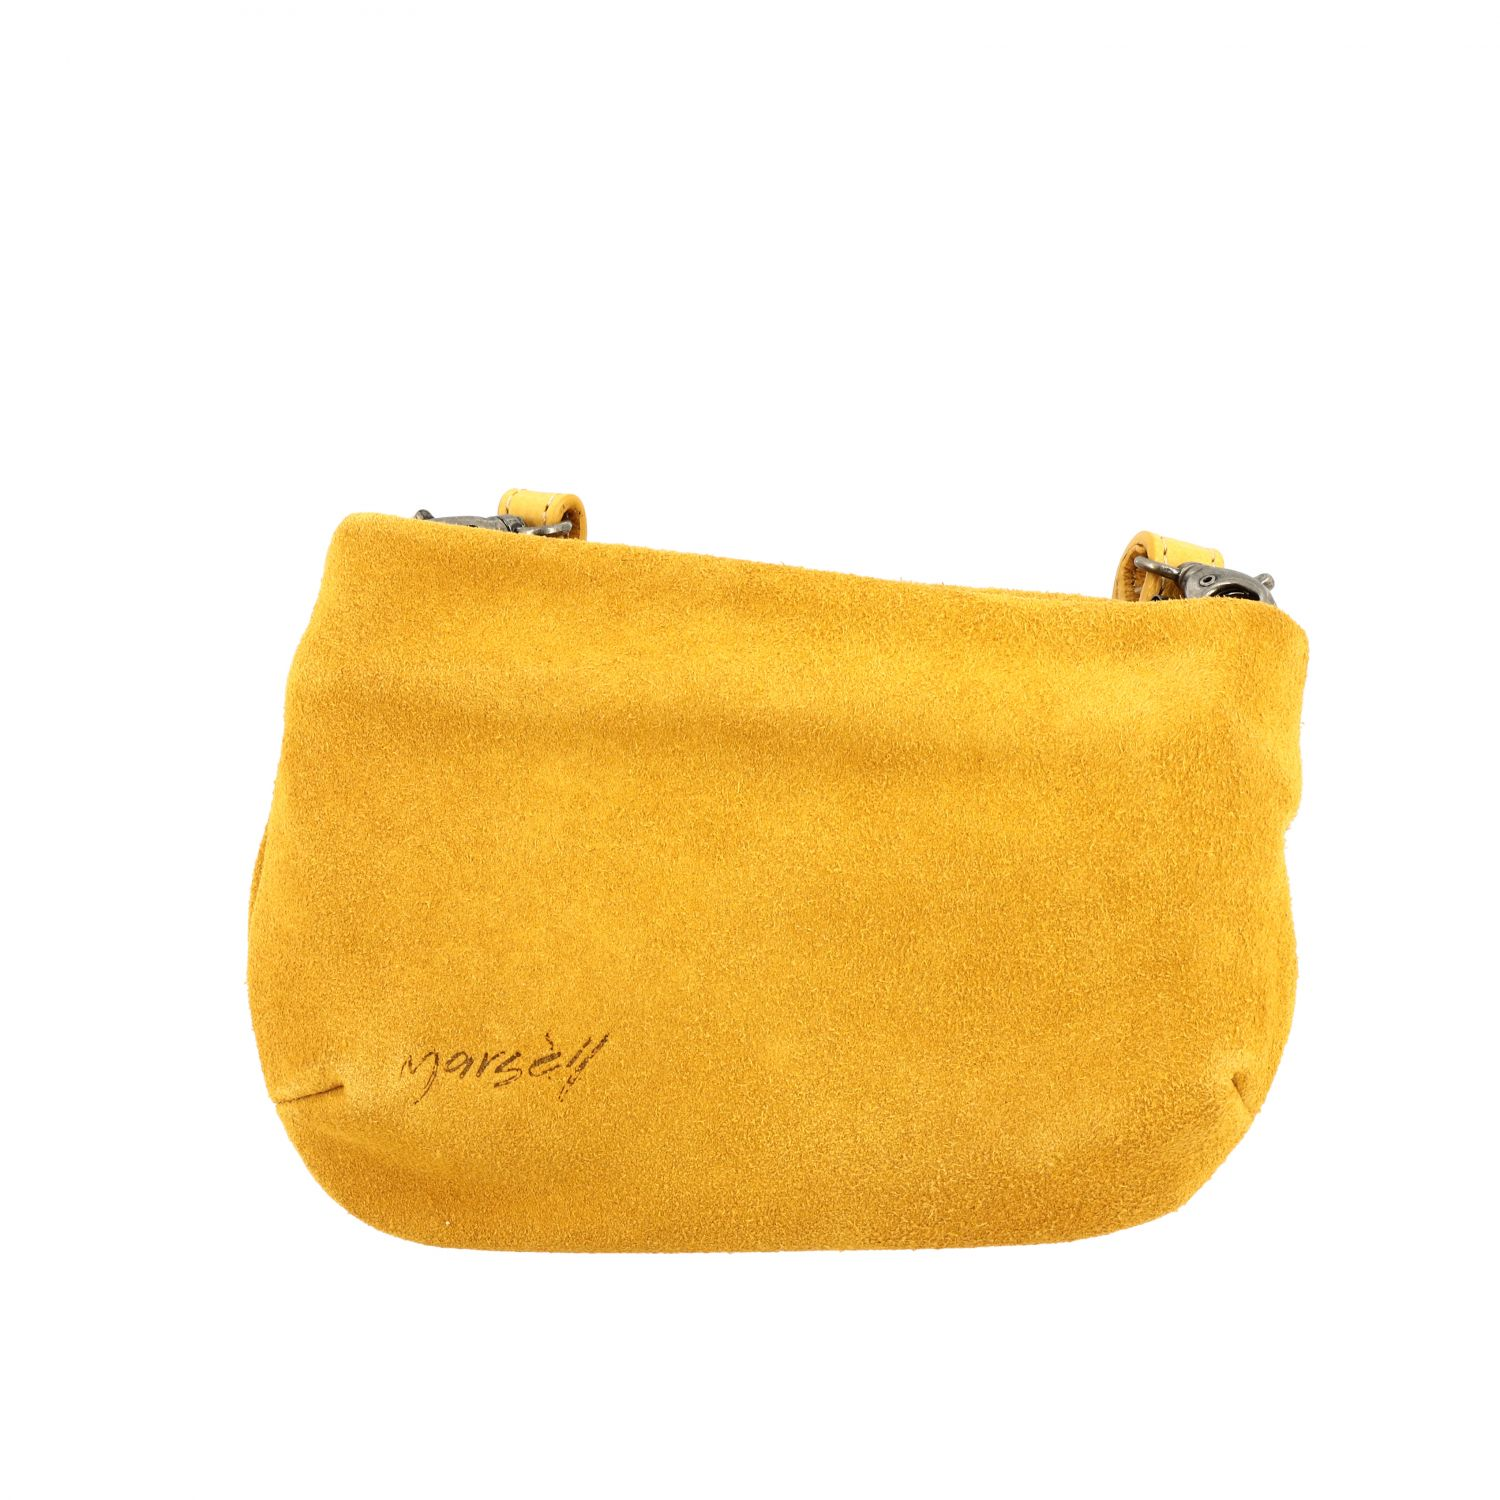 Marsell Fantasmetto shoulder bag in suede yellow 1